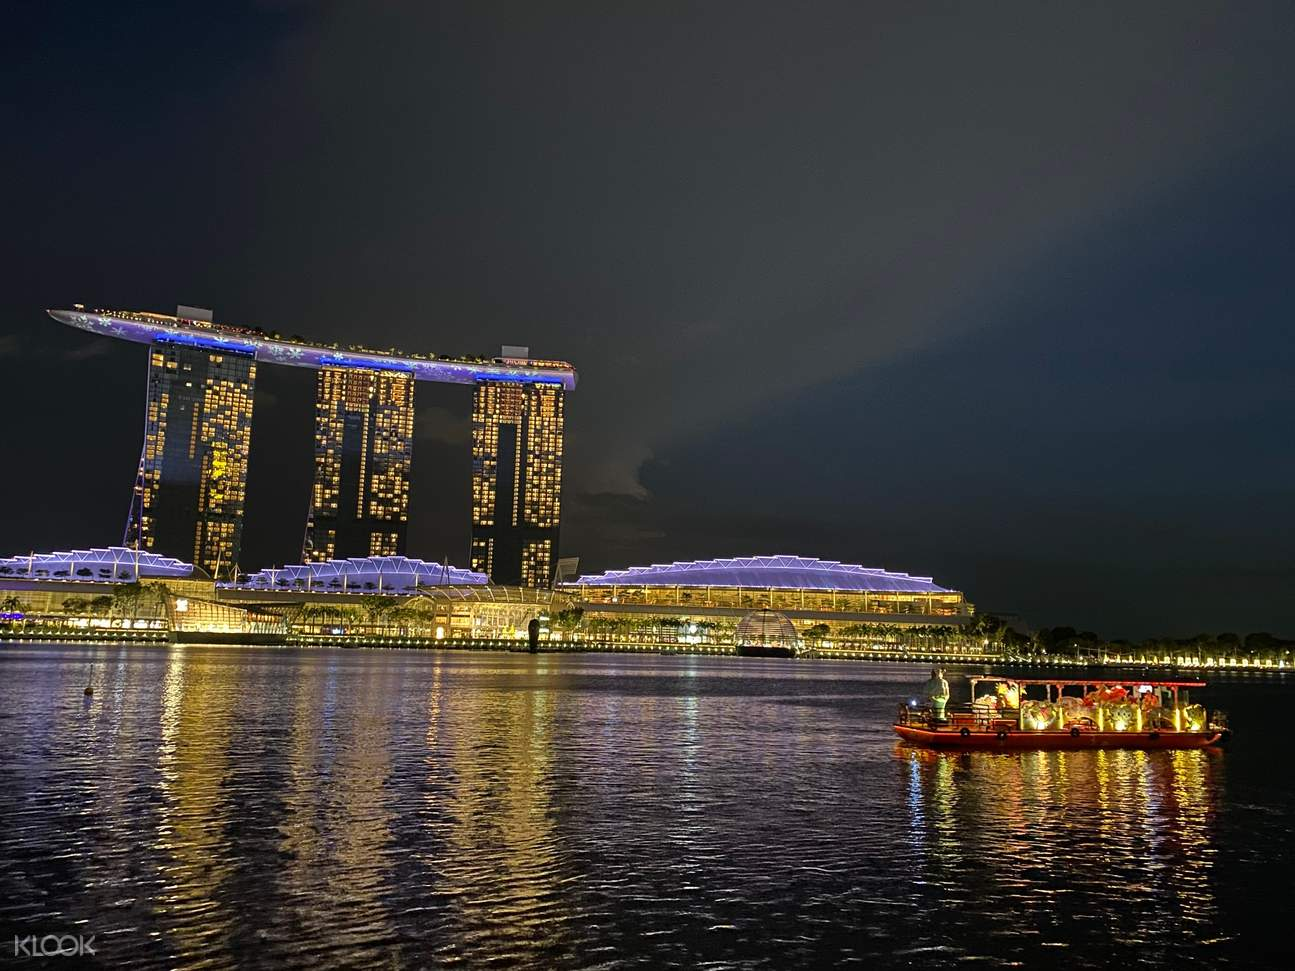 marina bay sands at night with a boat nearby